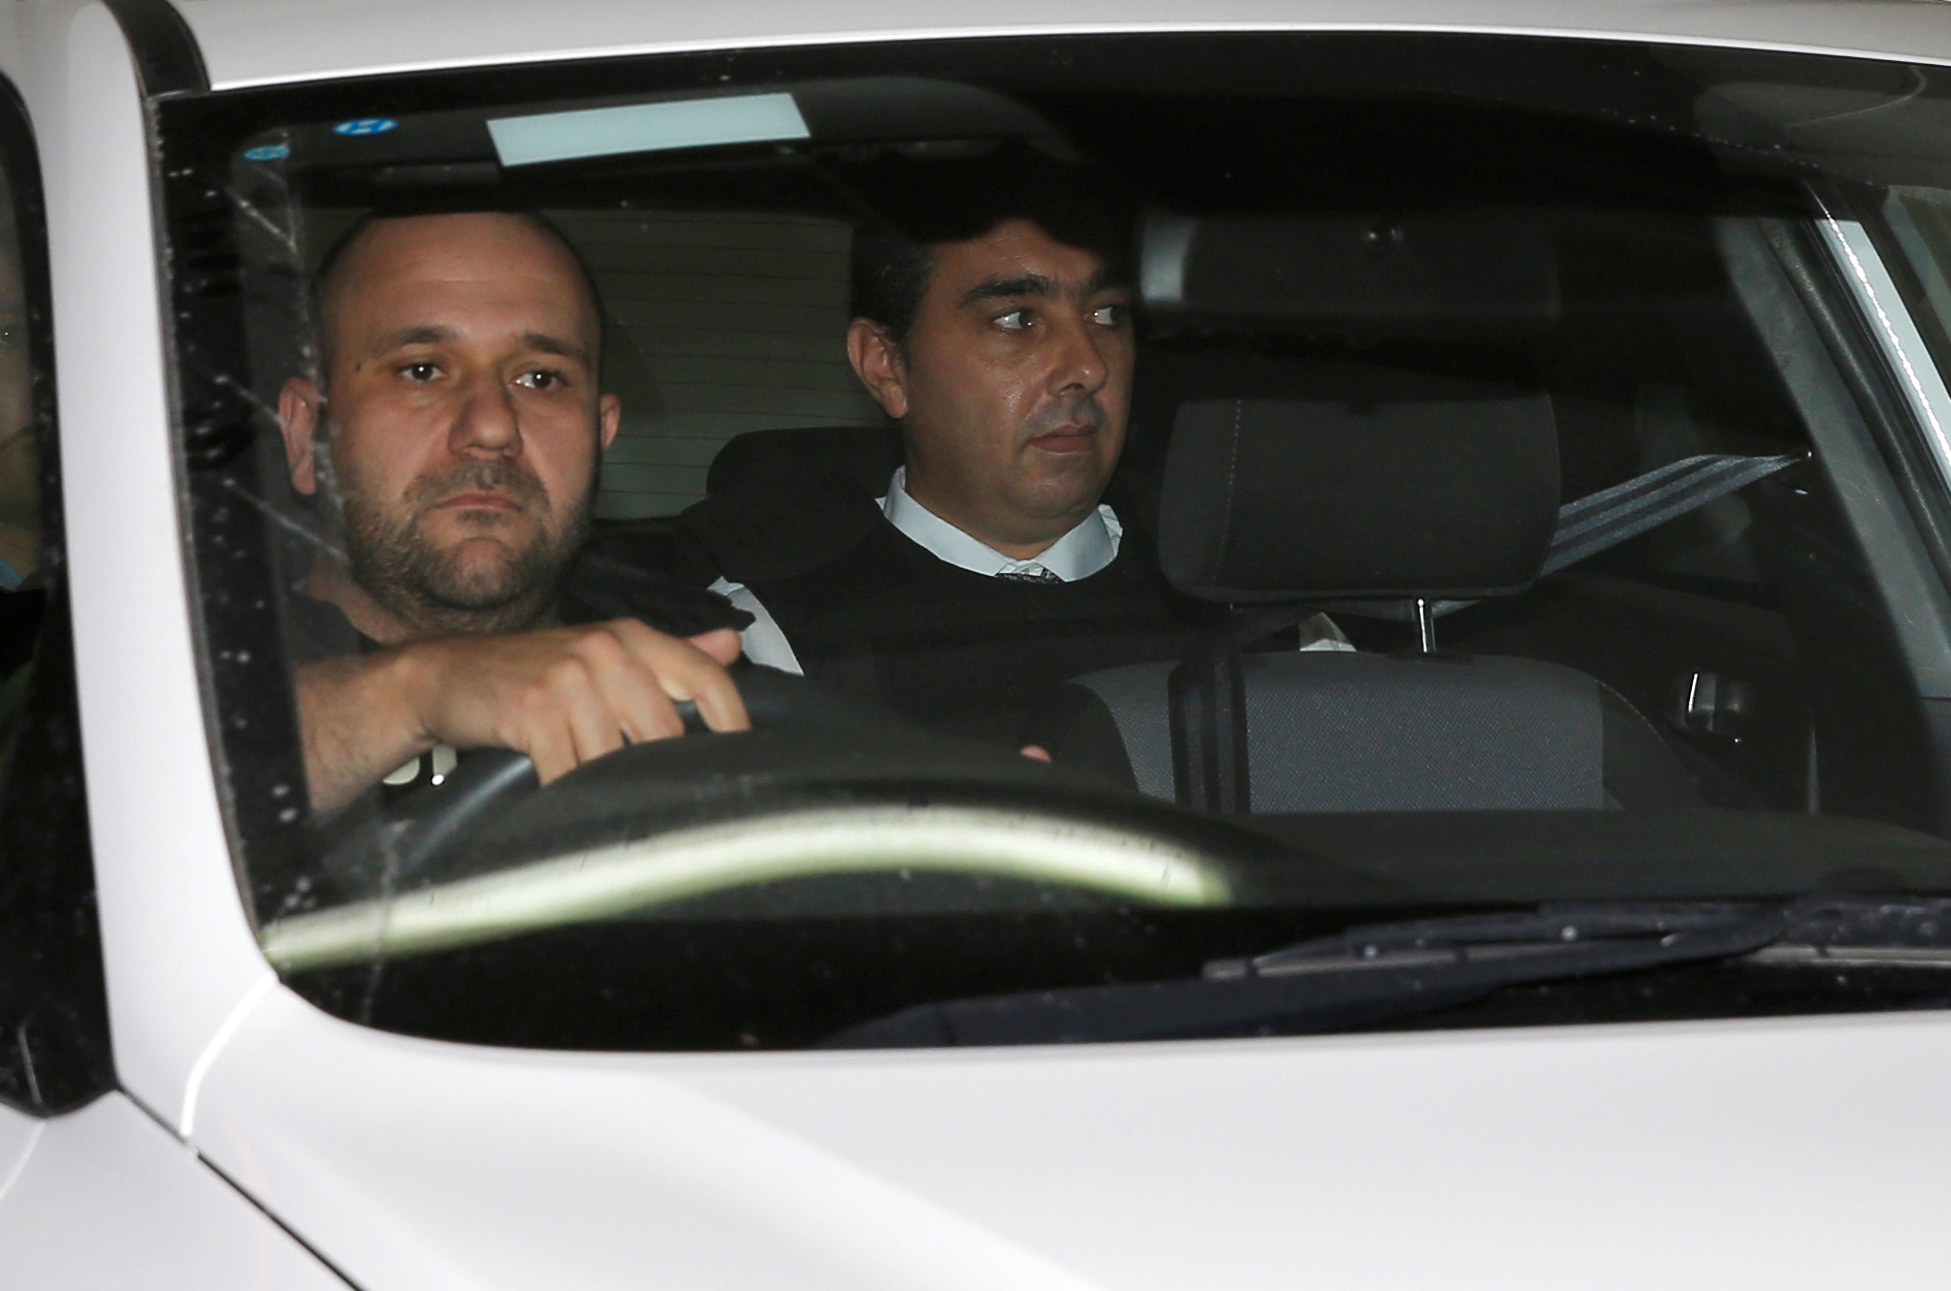 Melvin Theuma, who allegedly acted as a middle man in a plot to murder of journalist Daphne Caruana Galizia, is seen in a police car as he leaves the Courts of Justice in Valletta Wednesday. | REUTERS